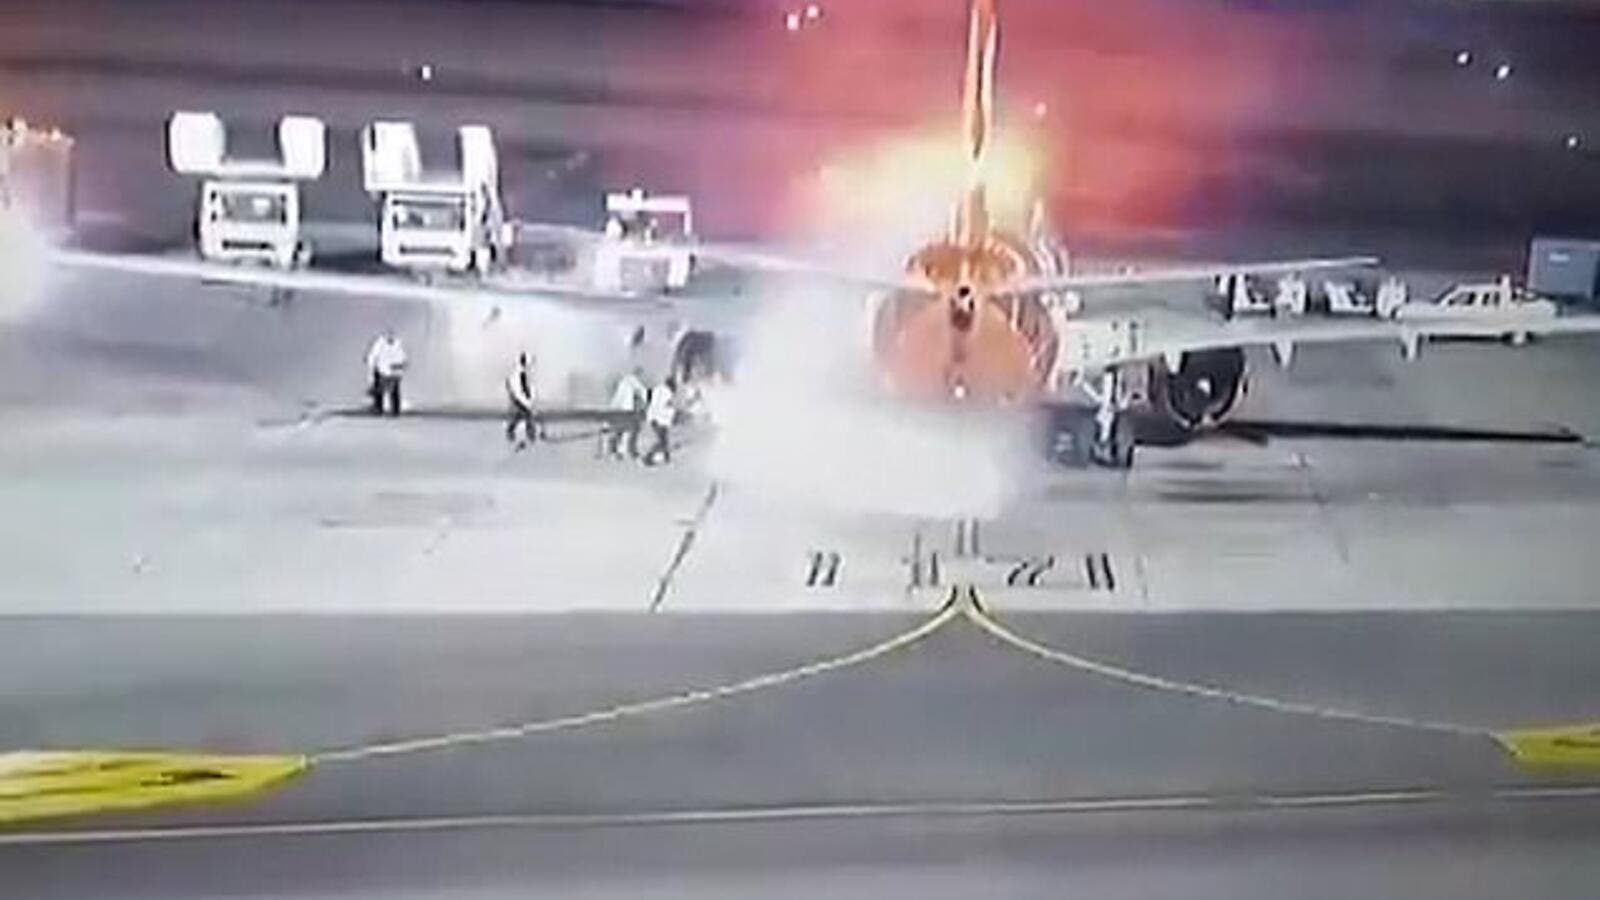 Plane Catches Fire After Landing in Egypt (Twitter)